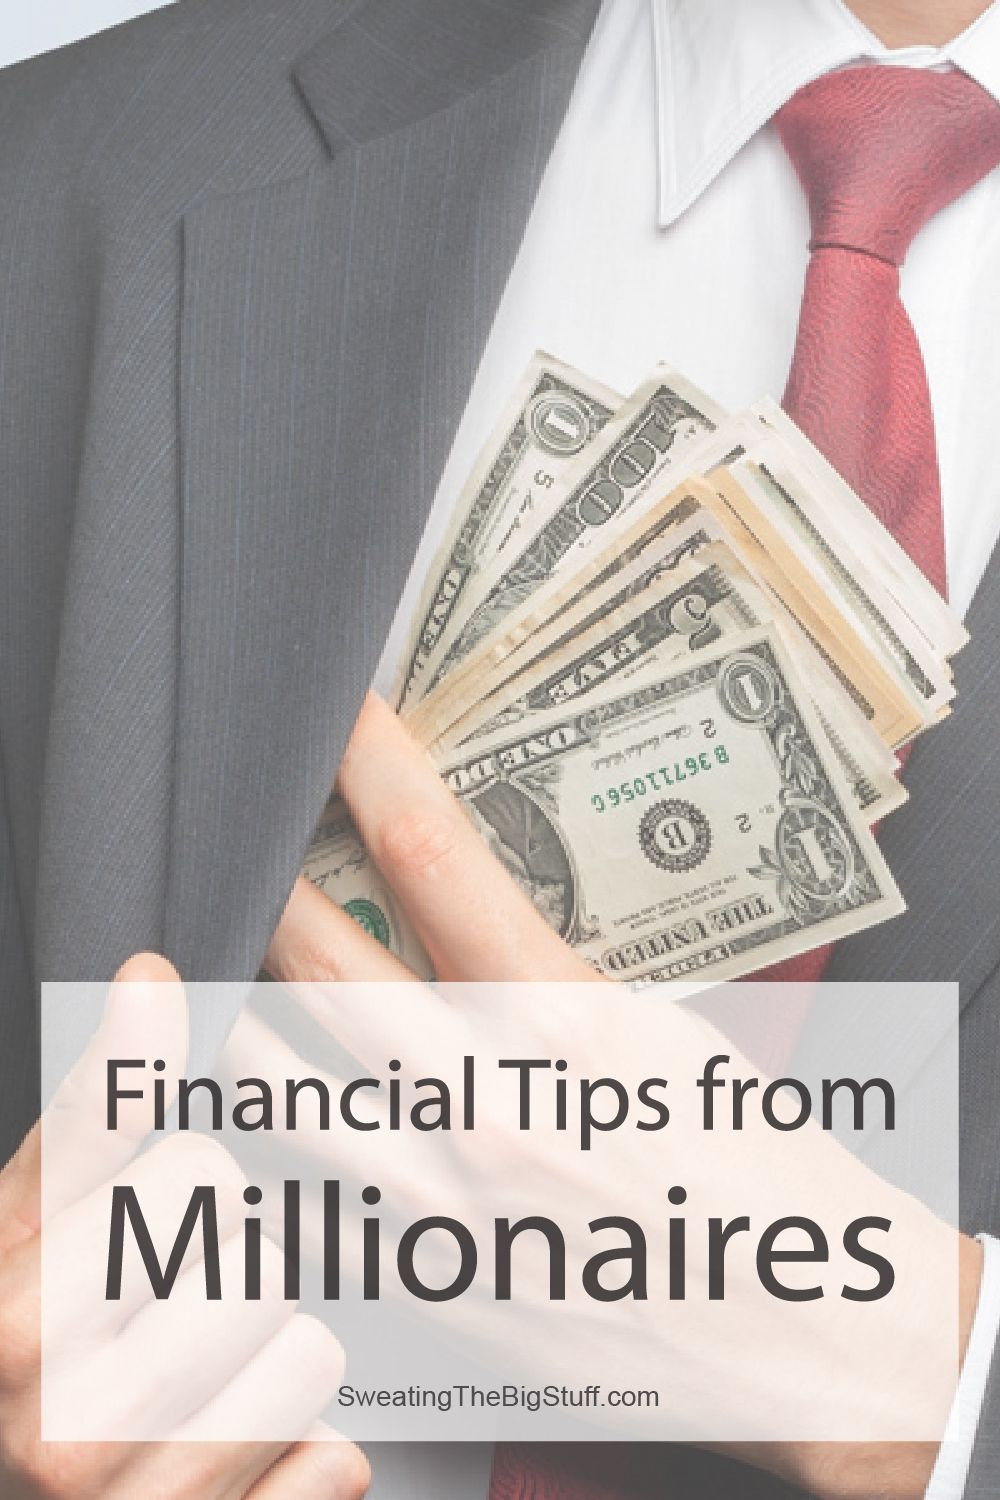 Financial Tips from Millionaires